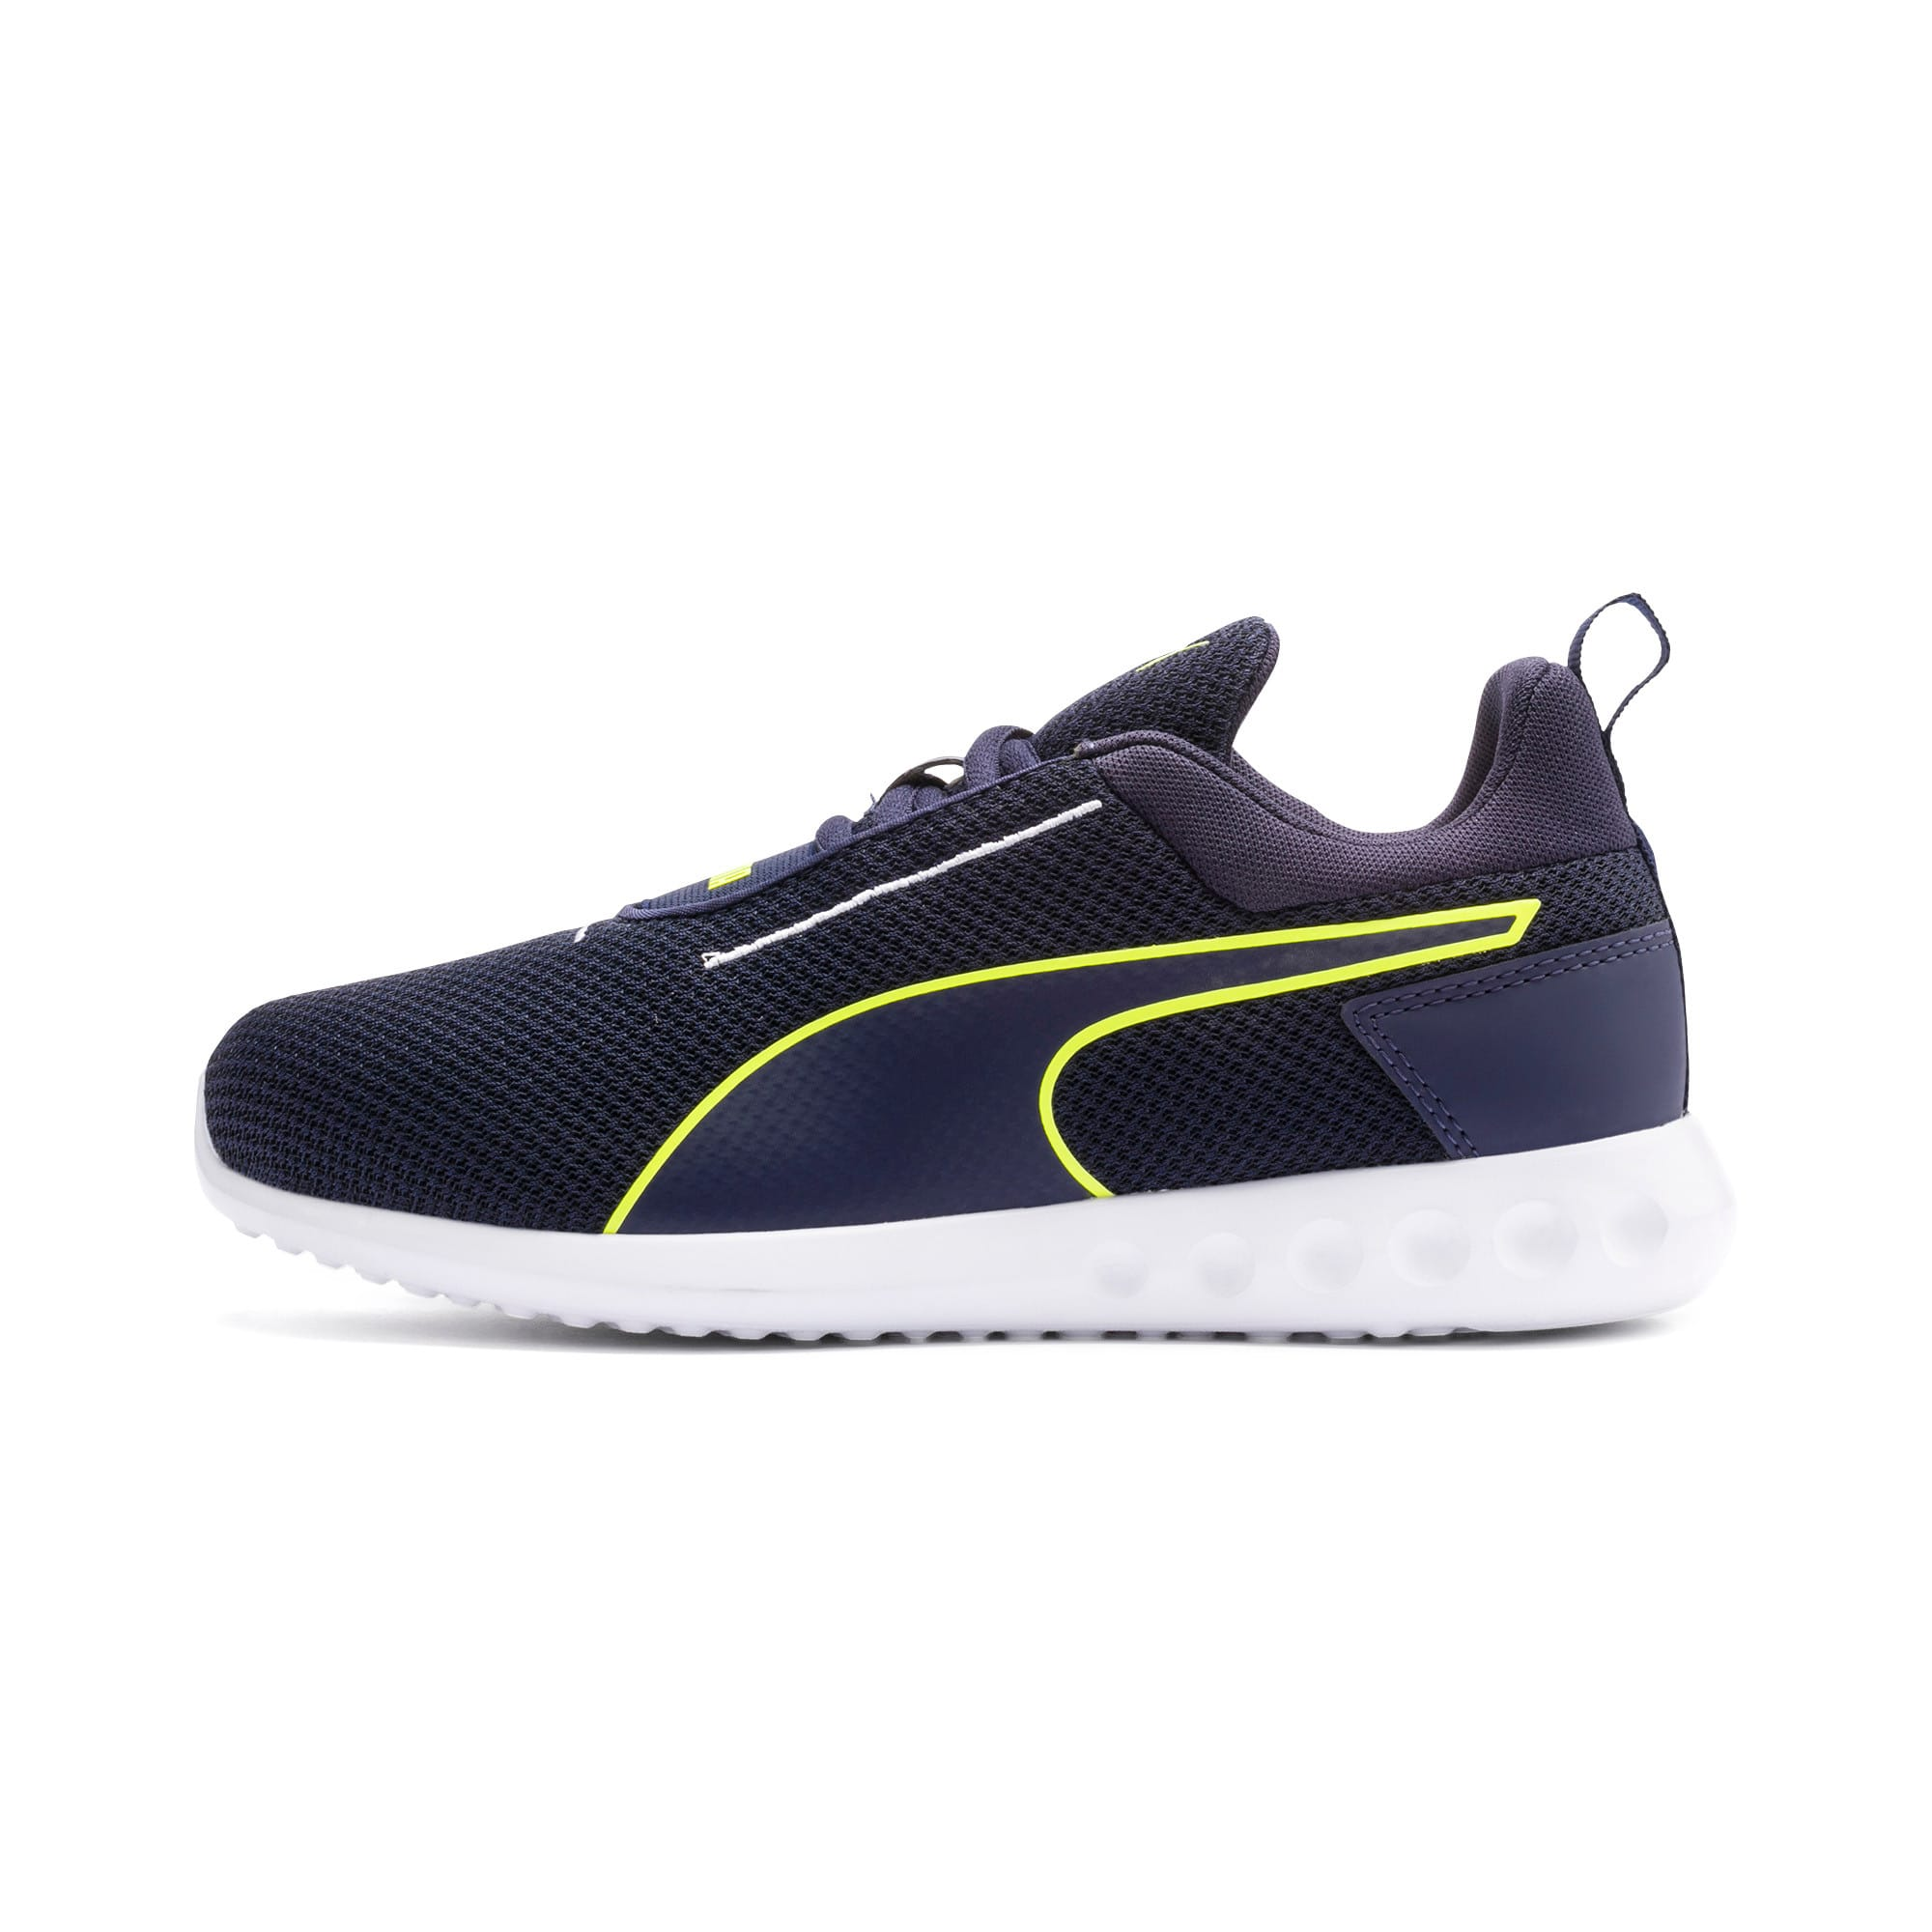 Thumbnail 1 of Carson 2 Concave Youth Trainers, Puma Black-Peacoat, medium